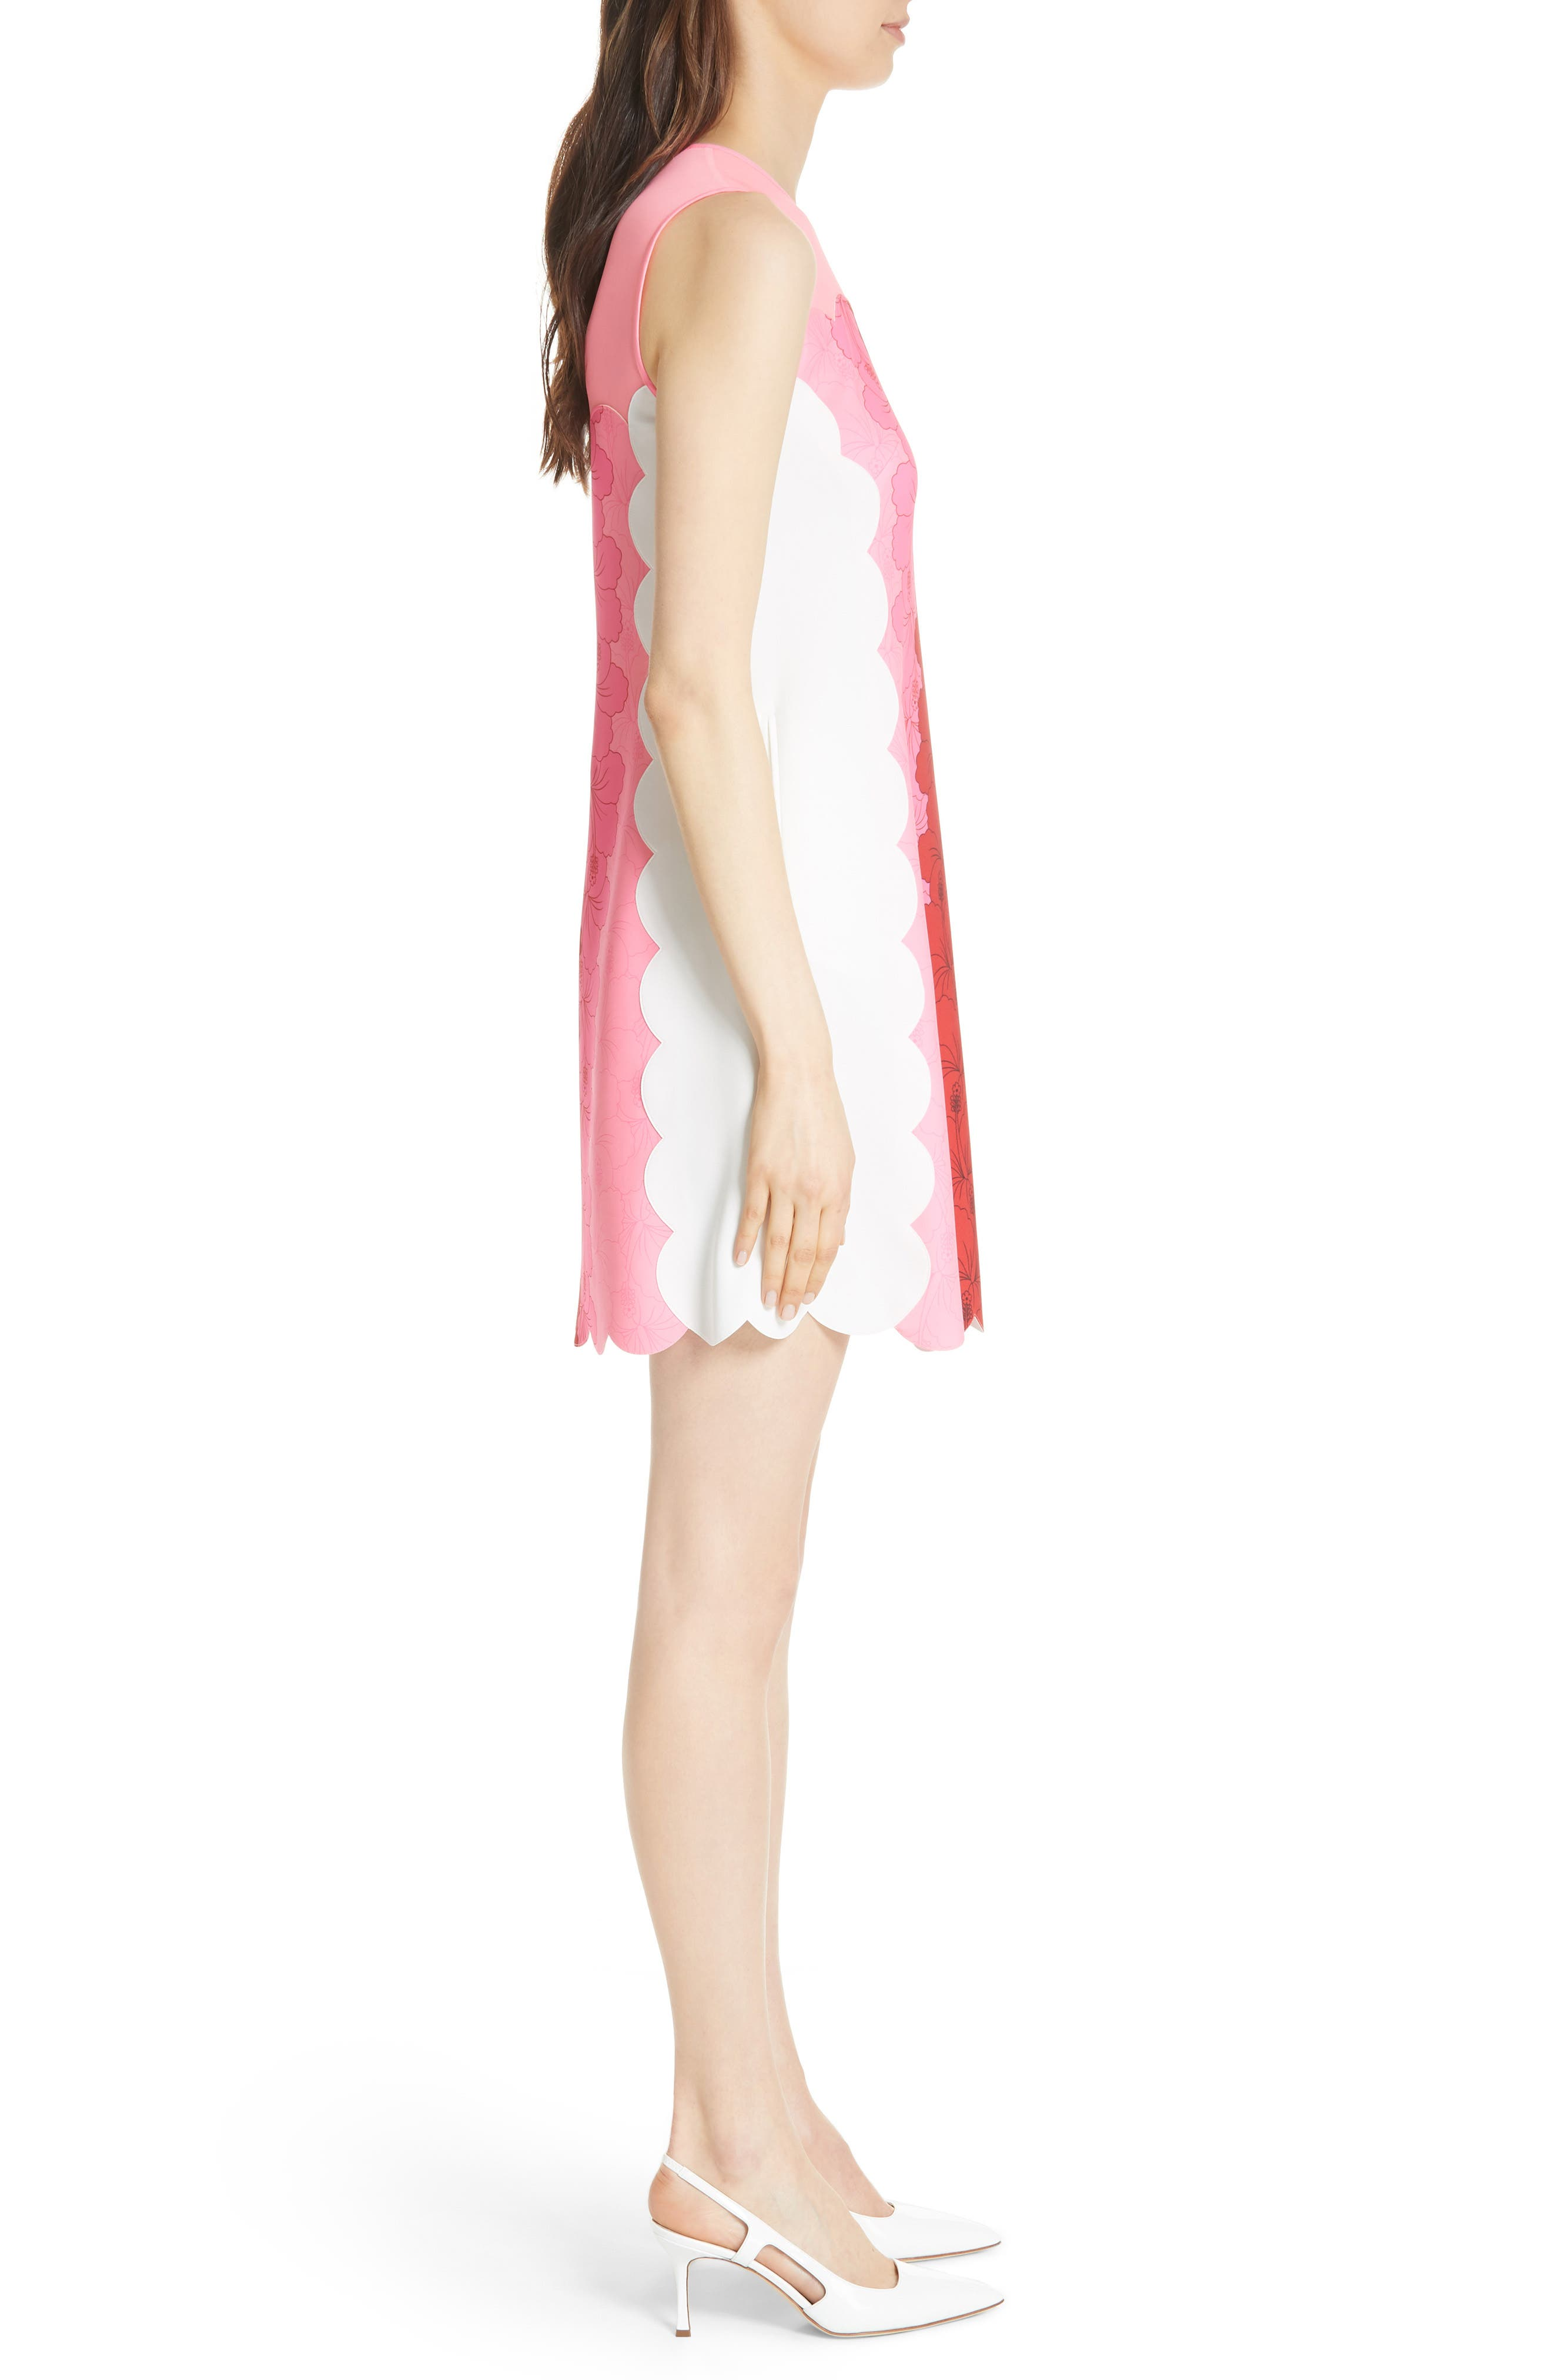 Angge Happiness Dress,                             Alternate thumbnail 3, color,                             Neon Pink